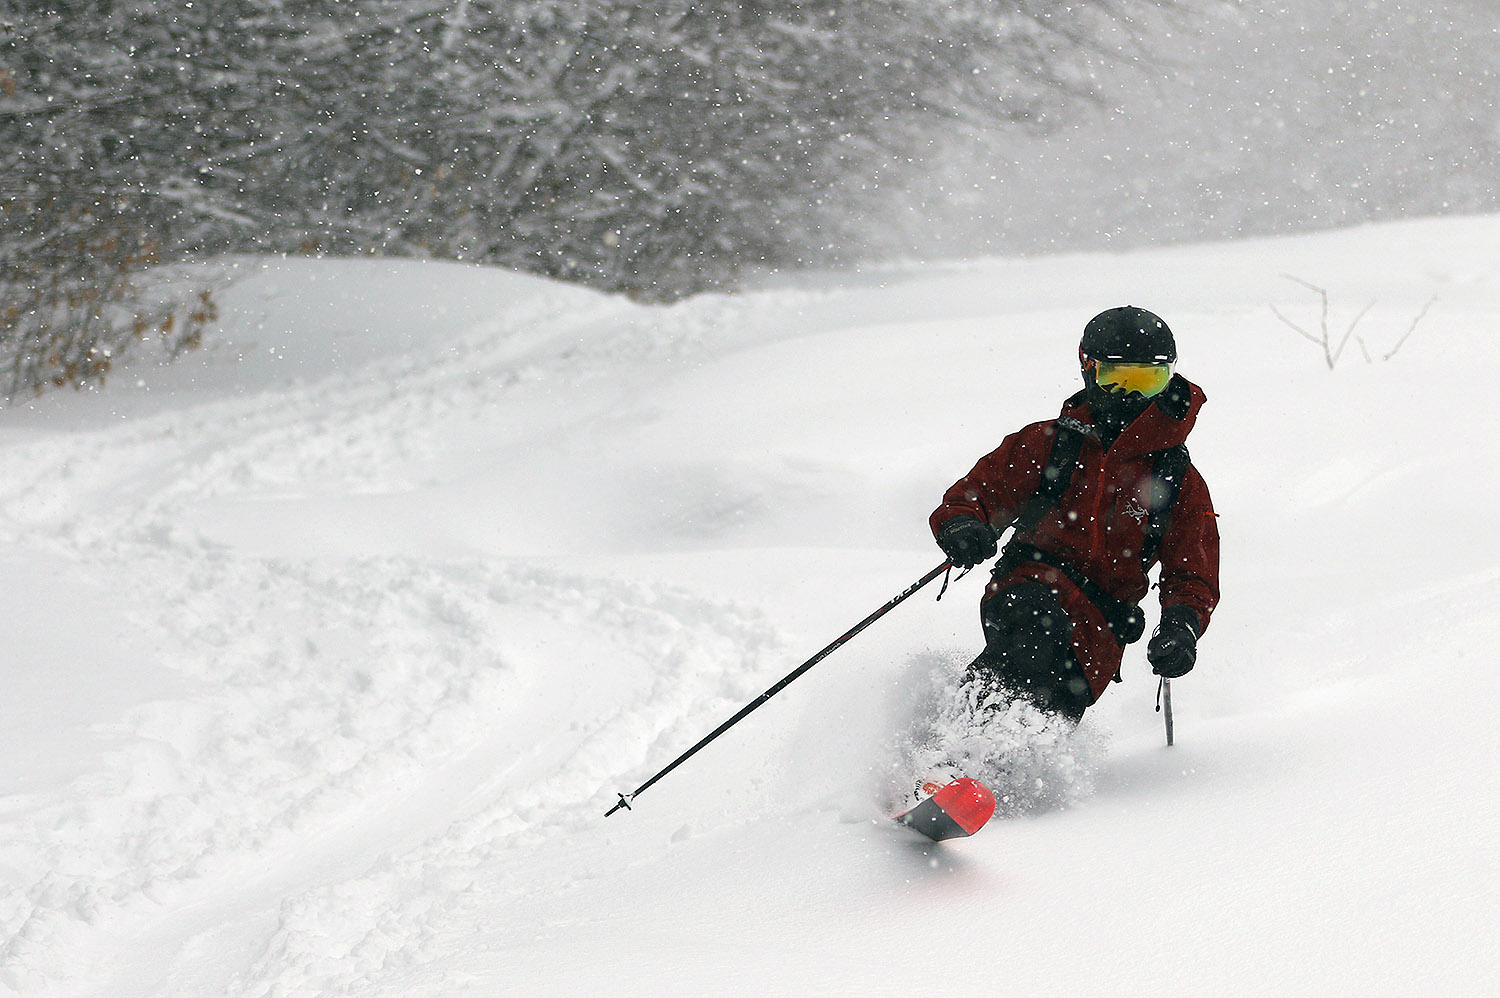 An image of Dylan Telemark skiing in fresh powder from Winter Storm Malcolm while we wait for the Timberline Quad chair to start loading at Bolton Valley Ski Resort in Vermont